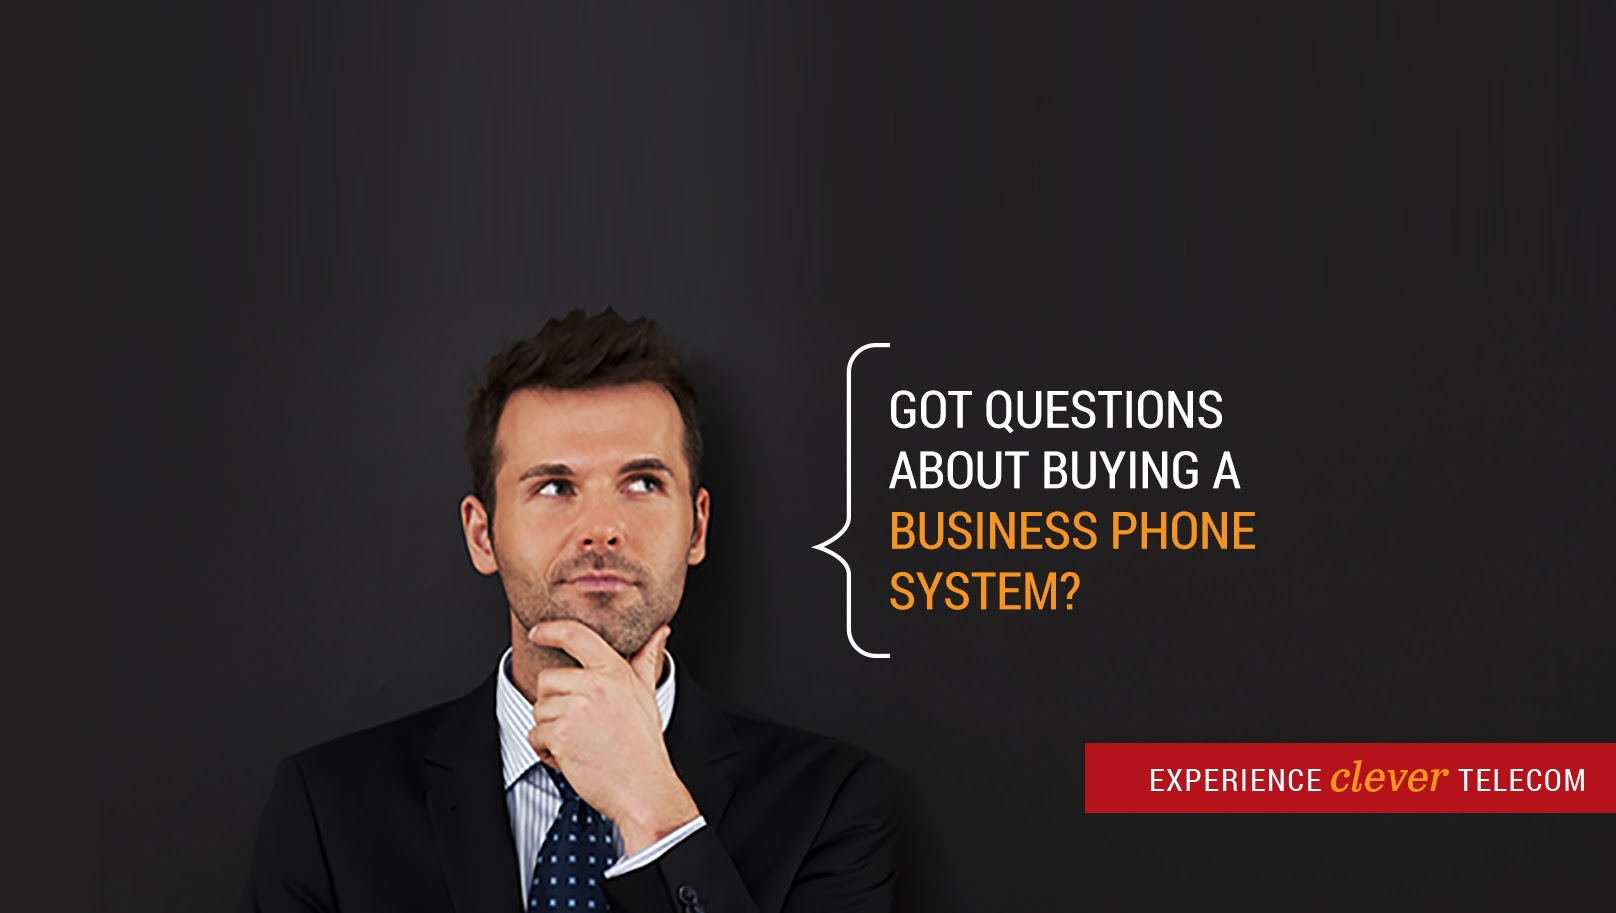 Looking for a phone system? Let us help you!